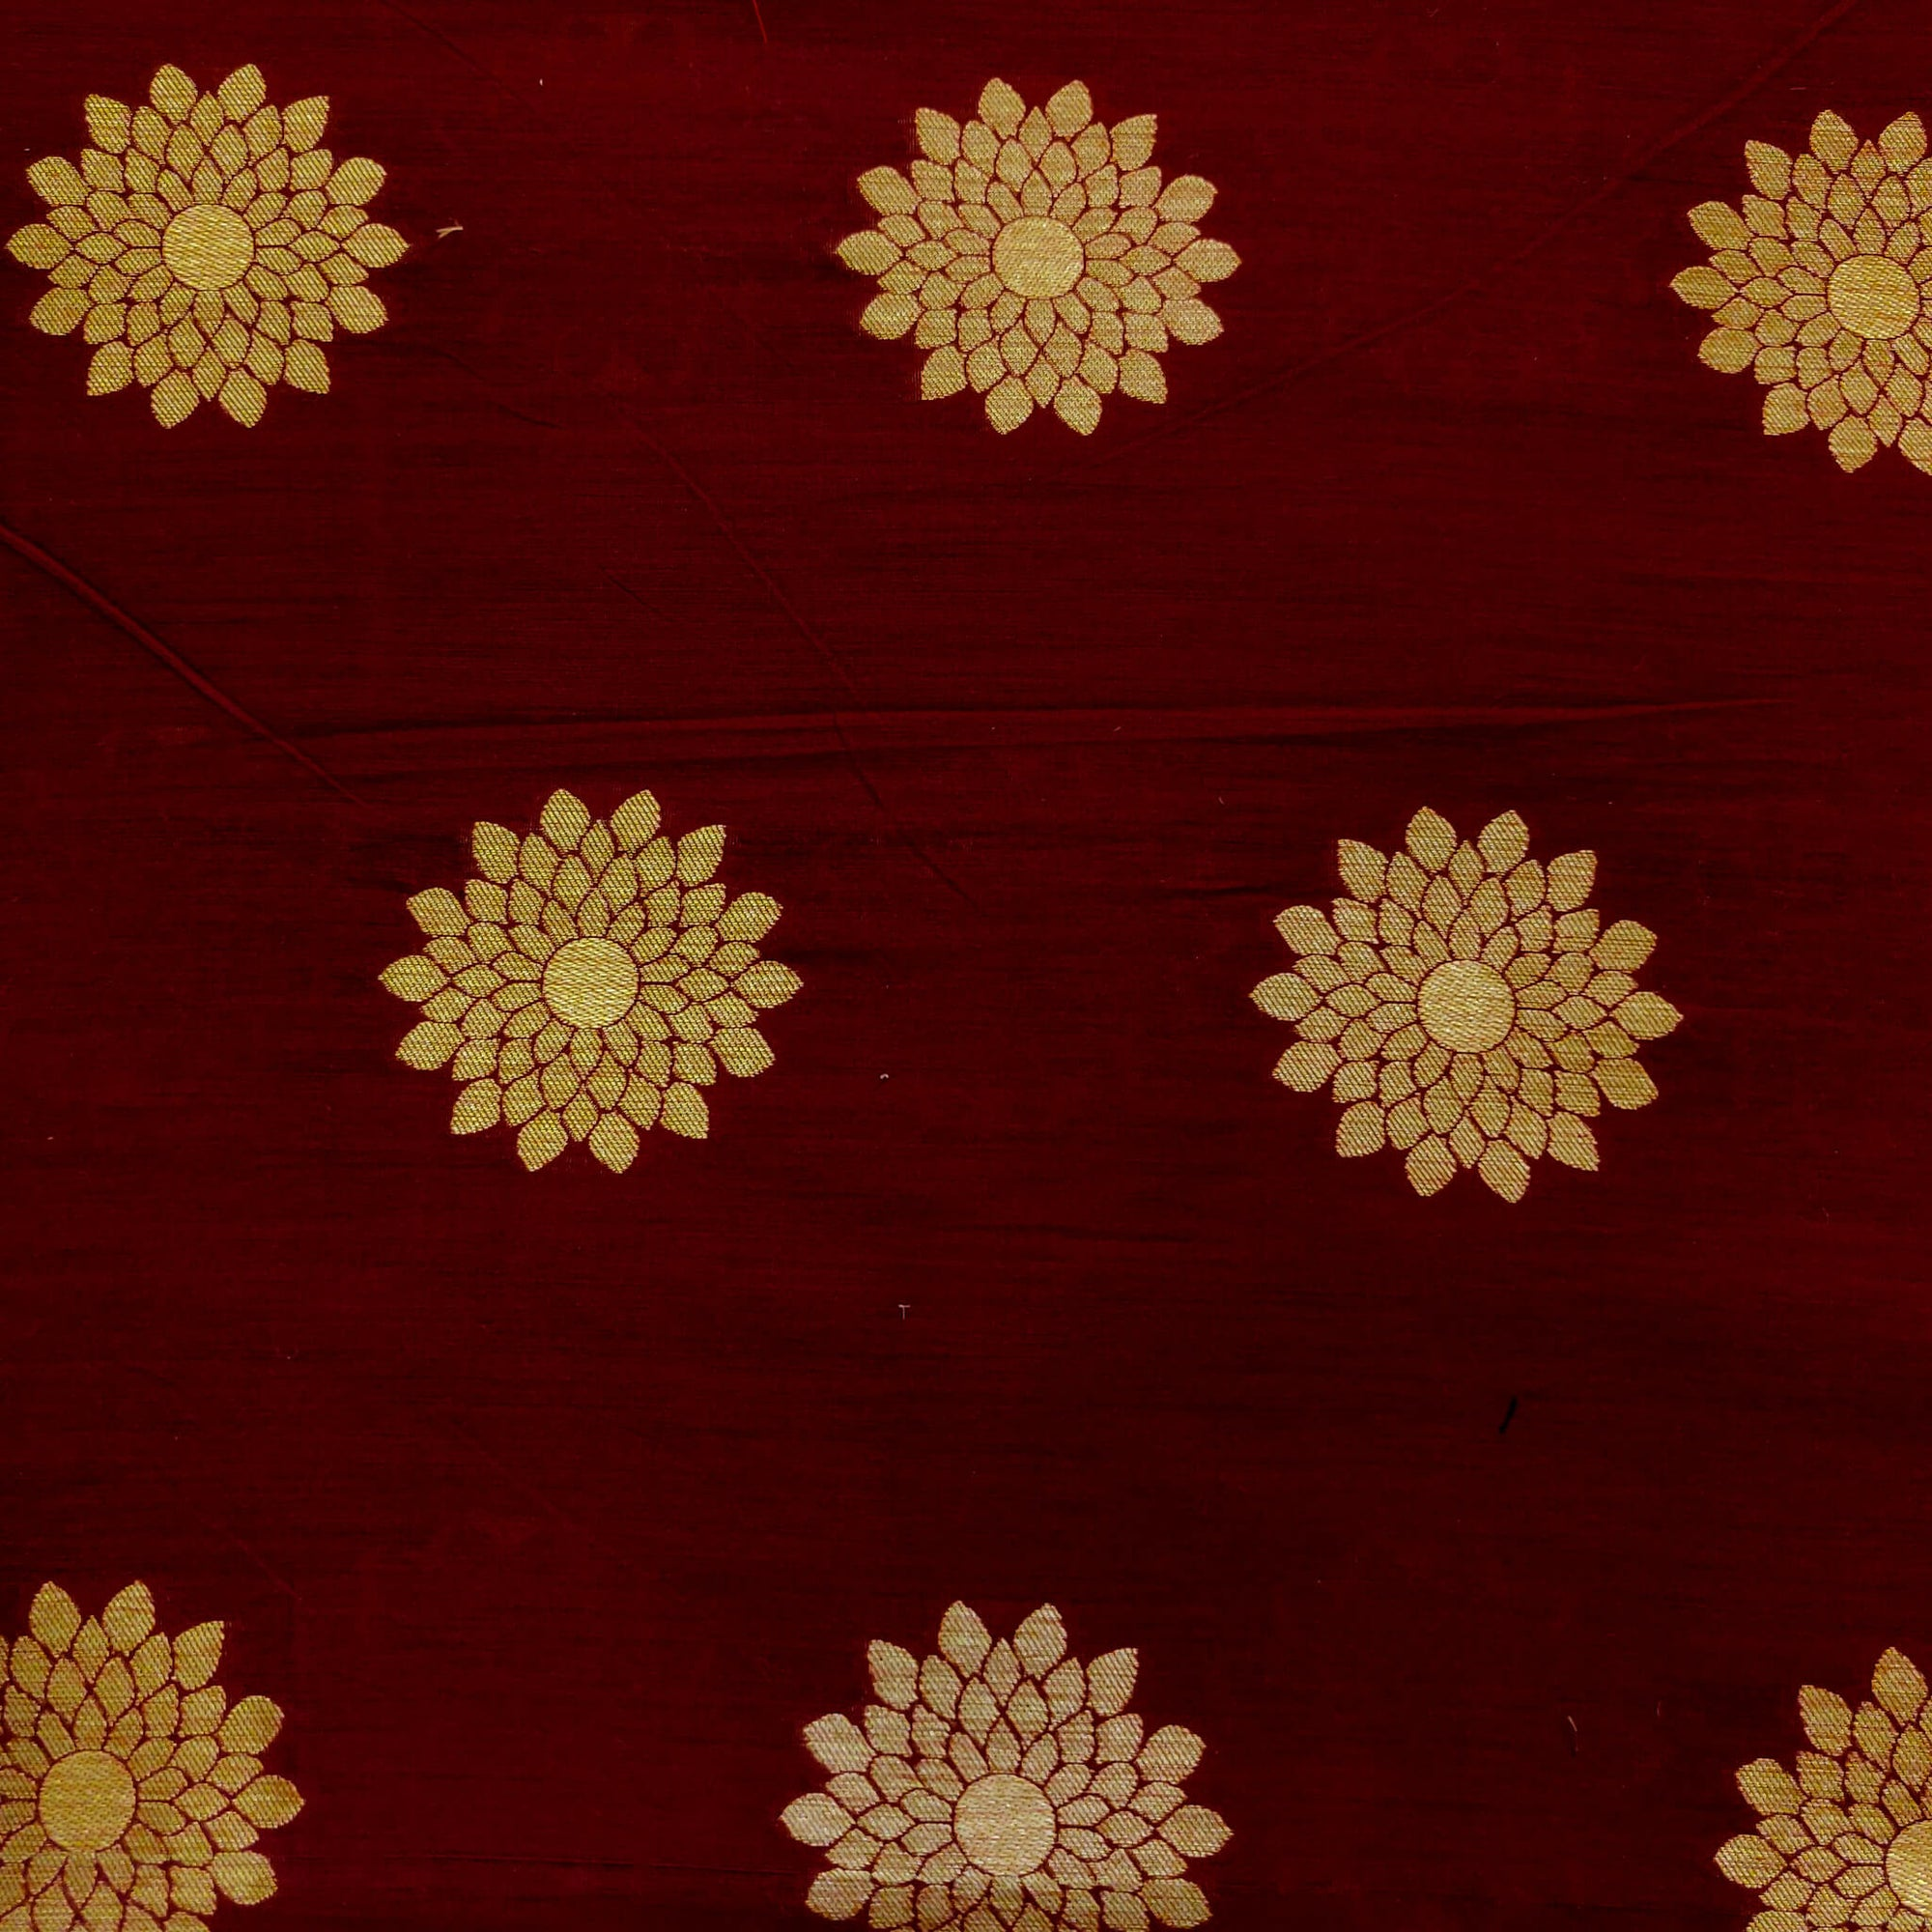 Cotton Silk Maroon With Beige Chakra Brocade Motif Woven Fabric